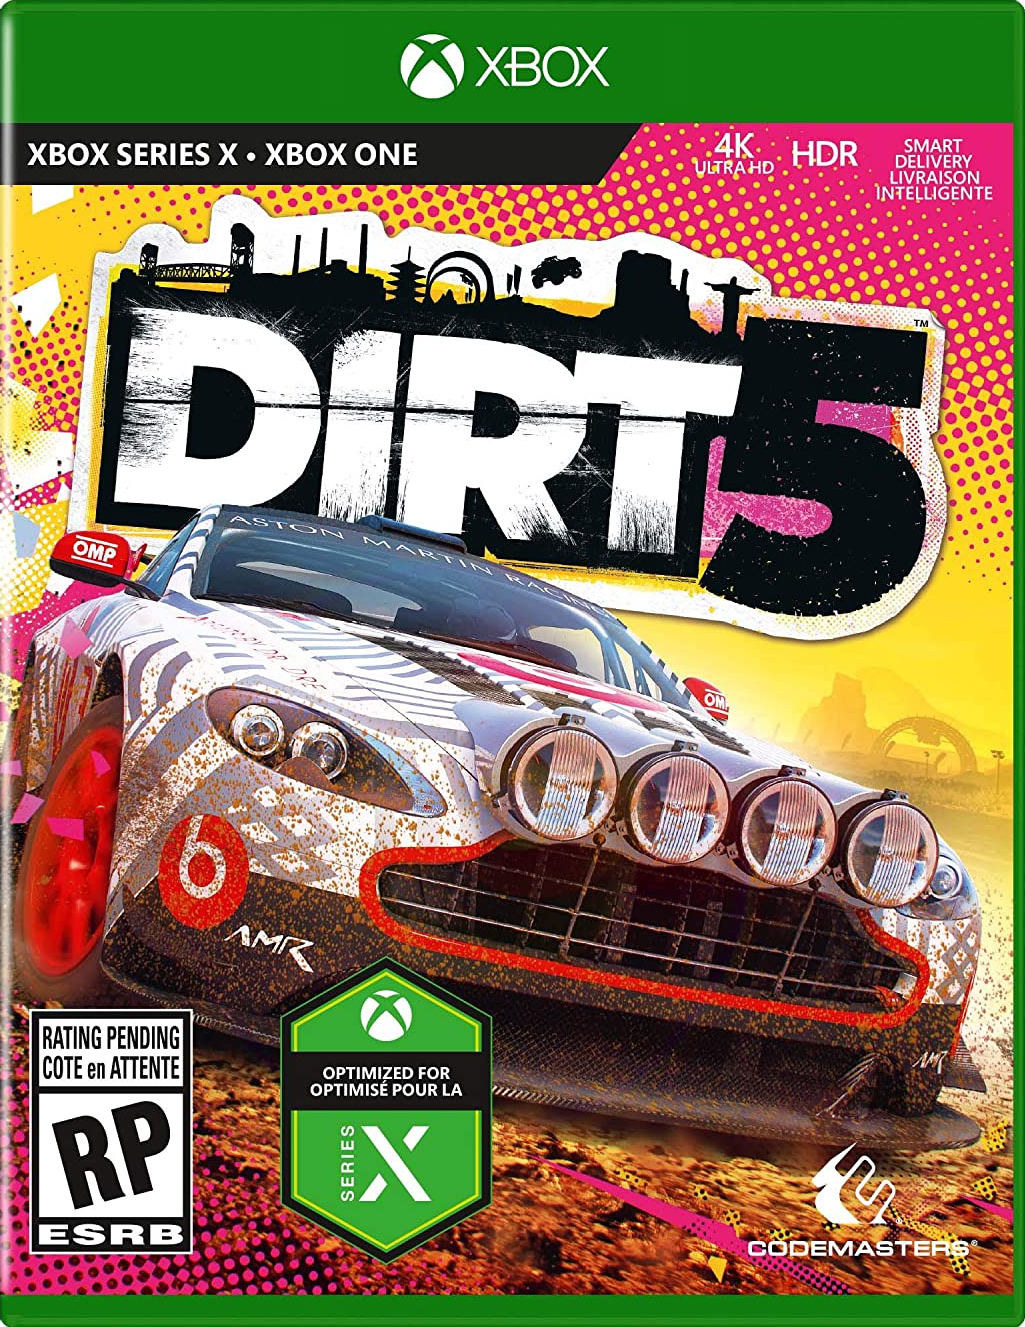 The Very Busy Box Art Of Xbox Series X Games Revealed Dirt 5 Gamereactor